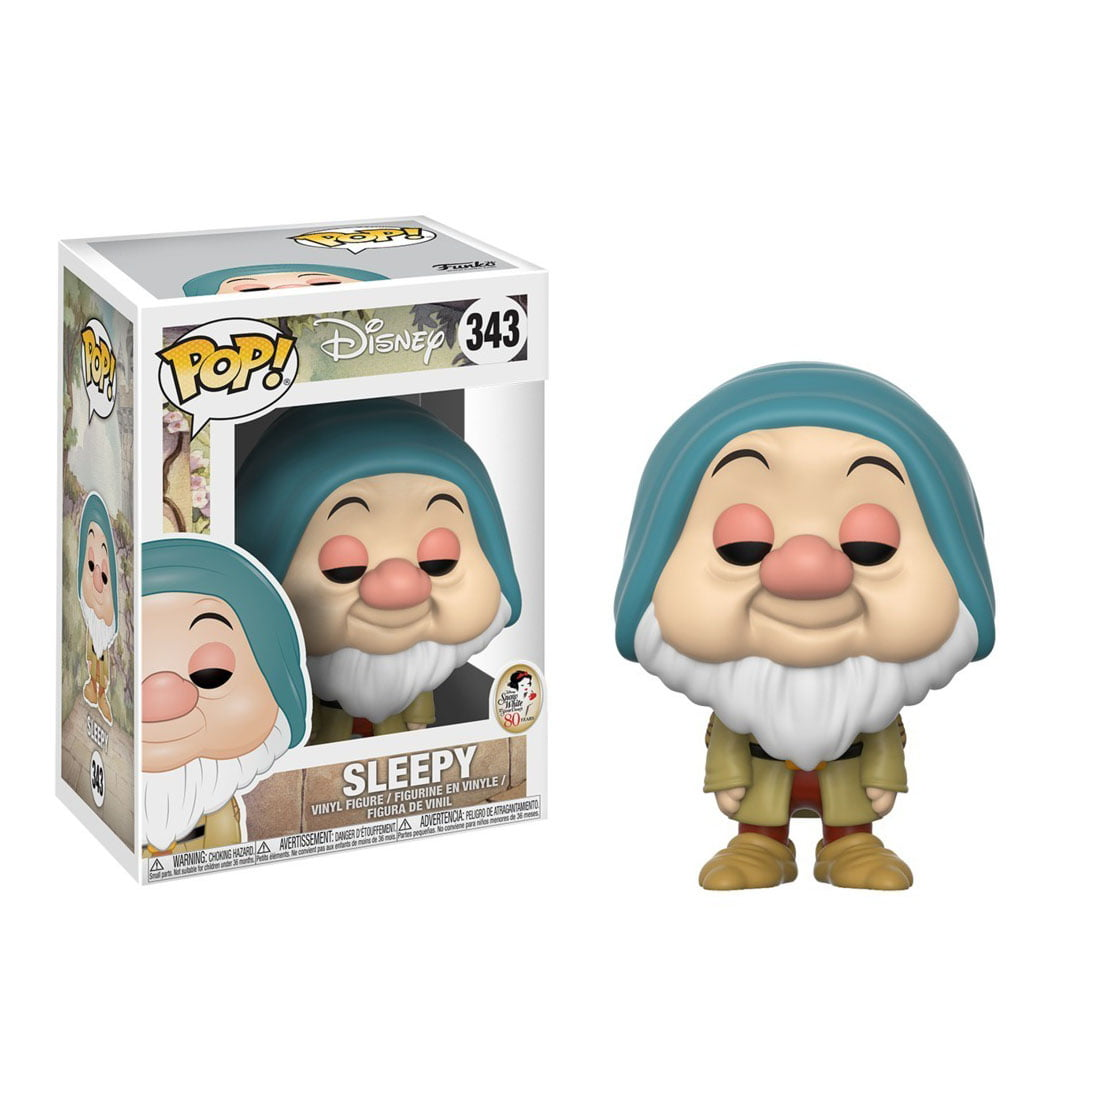 POP FUNKO - DISNEY - A BRANCA DE NEVE - SLEEPY